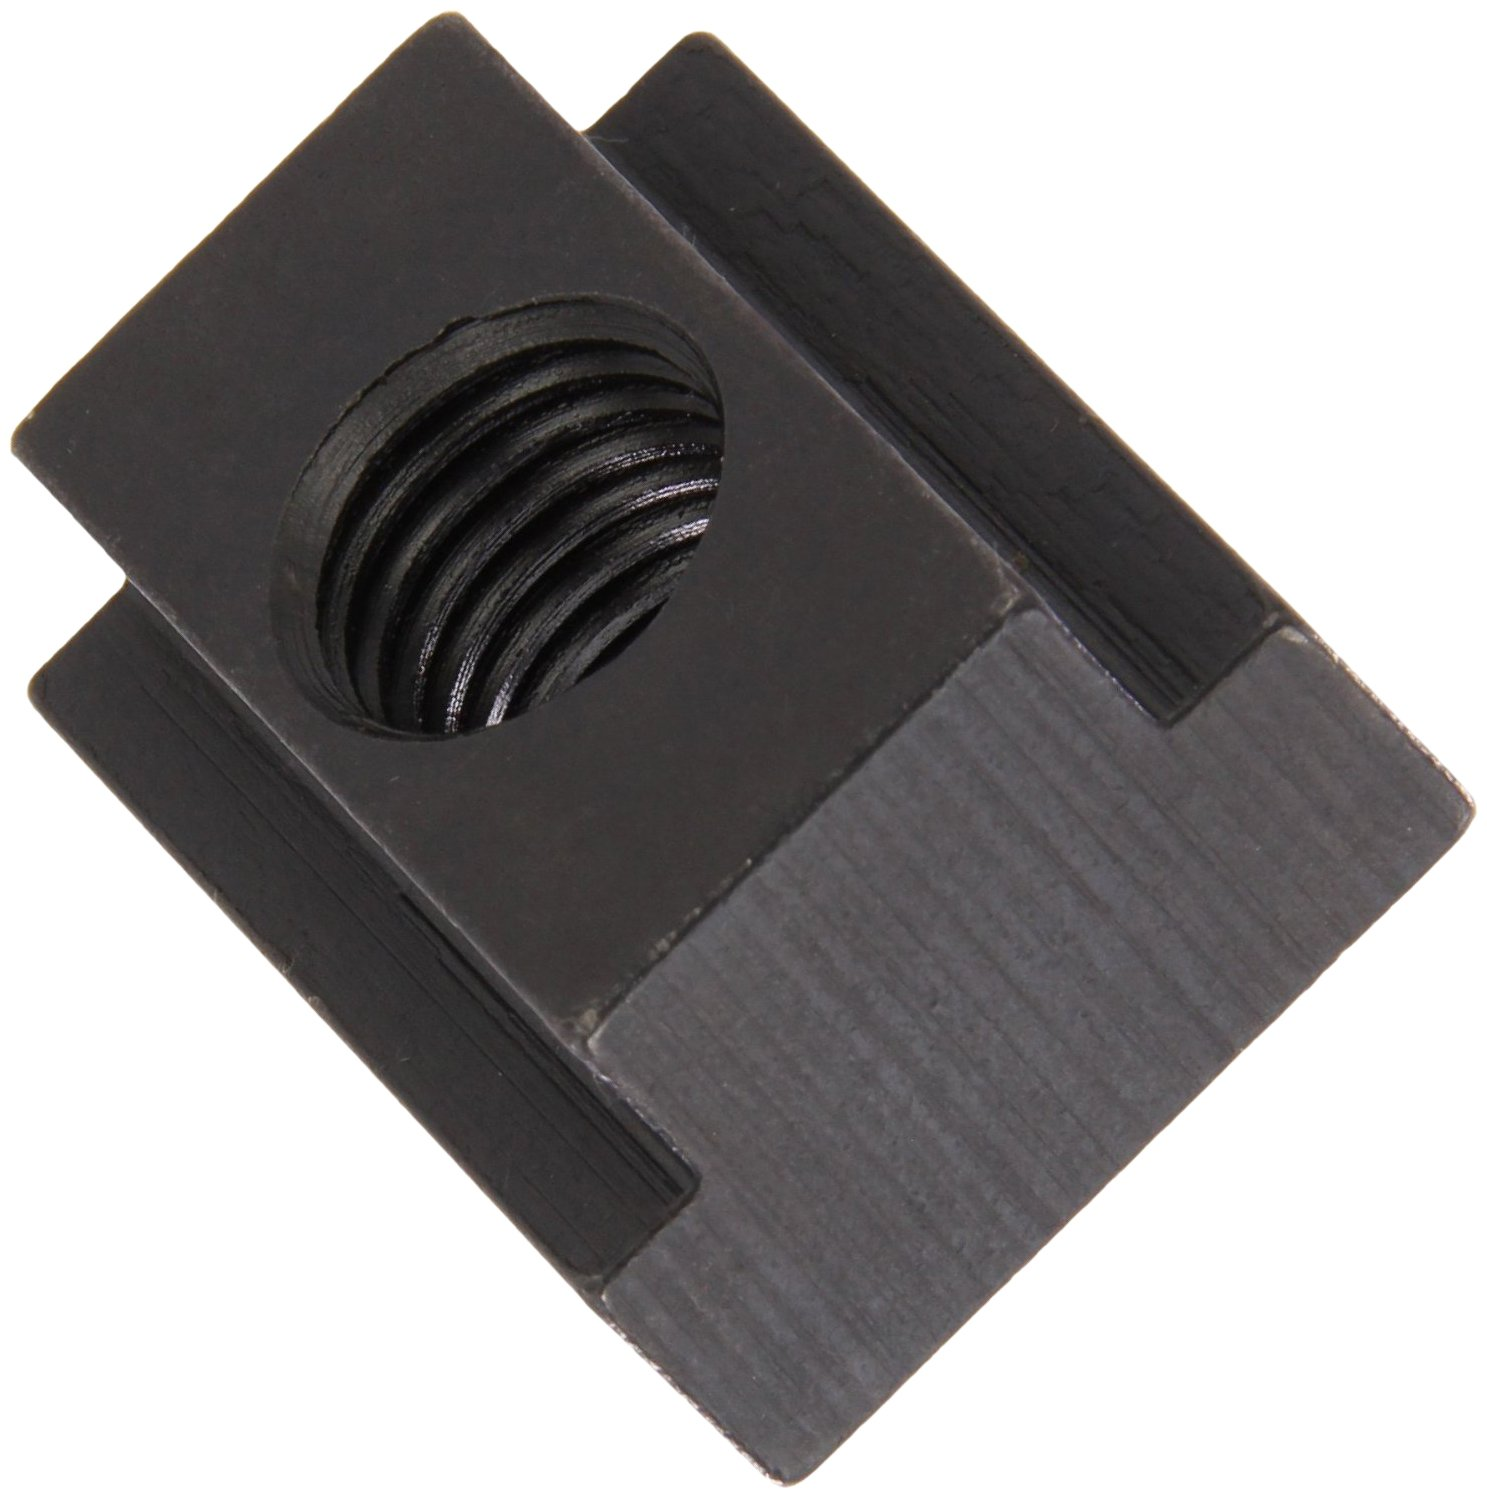 1018 Steel T-Slot Nut, Black Oxide Finish, Grade 6, 1/2''-13 Threads, 3/4'' Height, 3/4'' Slot Depth, Made in US (Pack of 5)